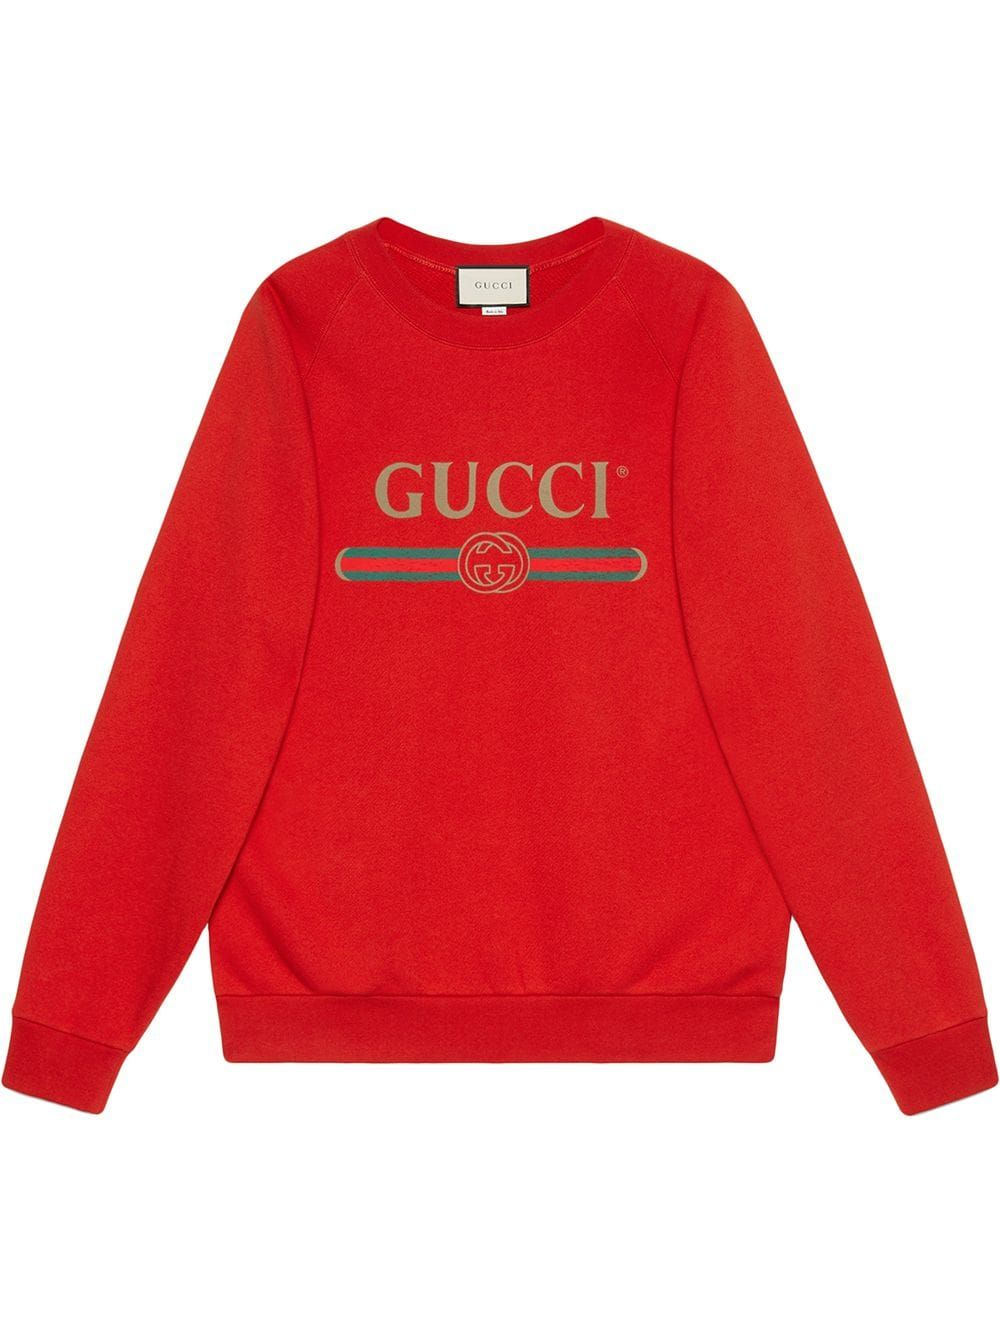 Gucci Oversize Sweatshirt With Sequin Patches Red Sweatshirts Oversized Sweatshirt Sweatshirts Women [ 1334 x 1000 Pixel ]